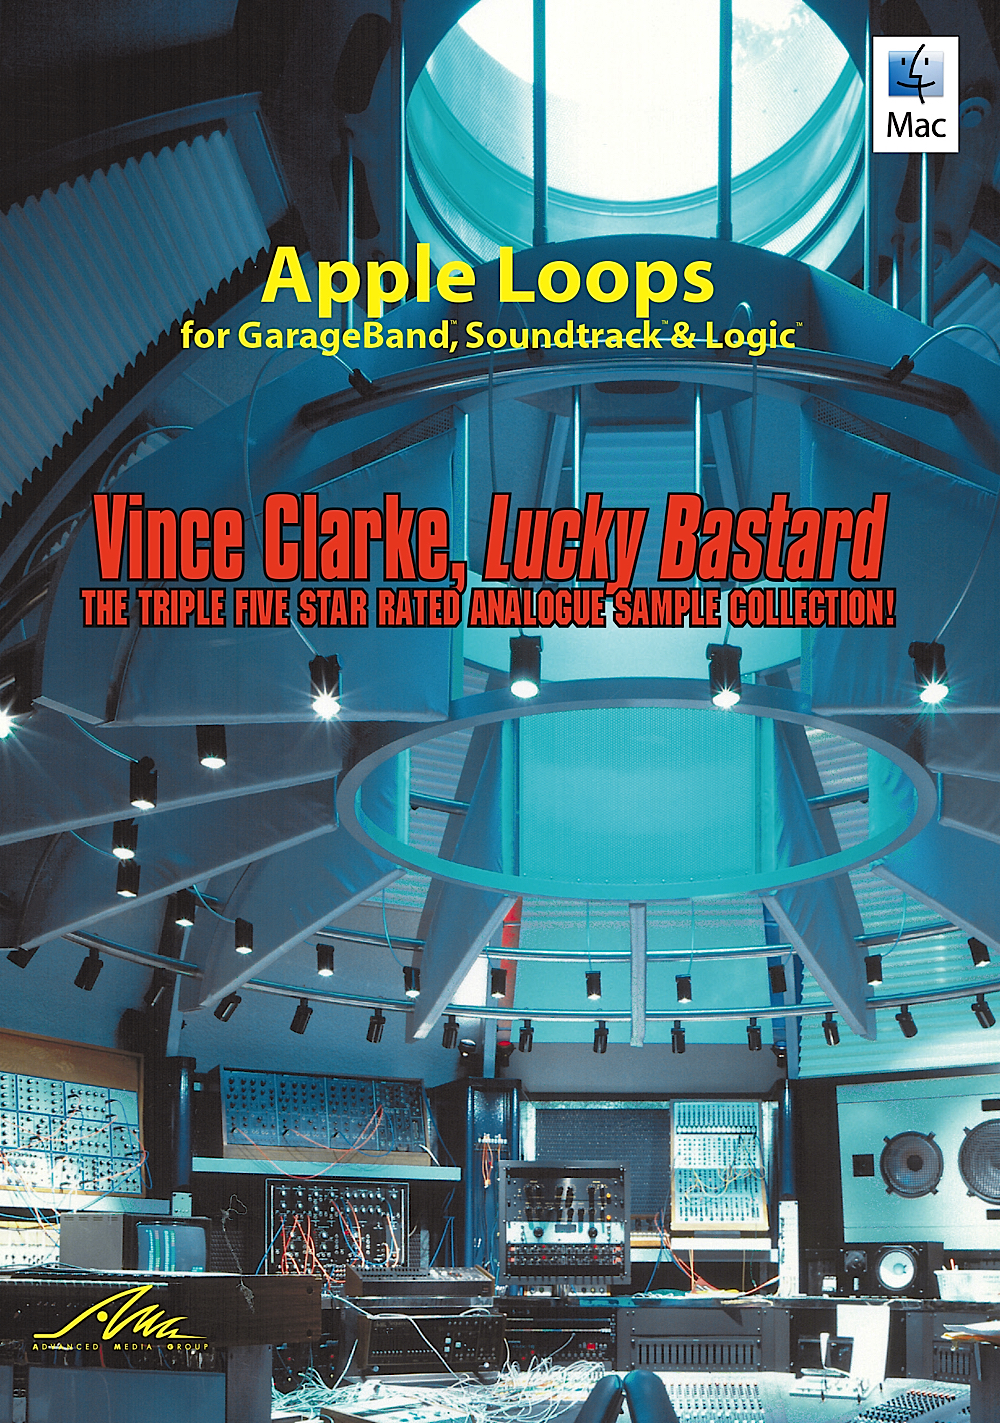 Vince Clarke, Lucky Bastard - Apple Loops from the King of the Synth [Download] by AMG